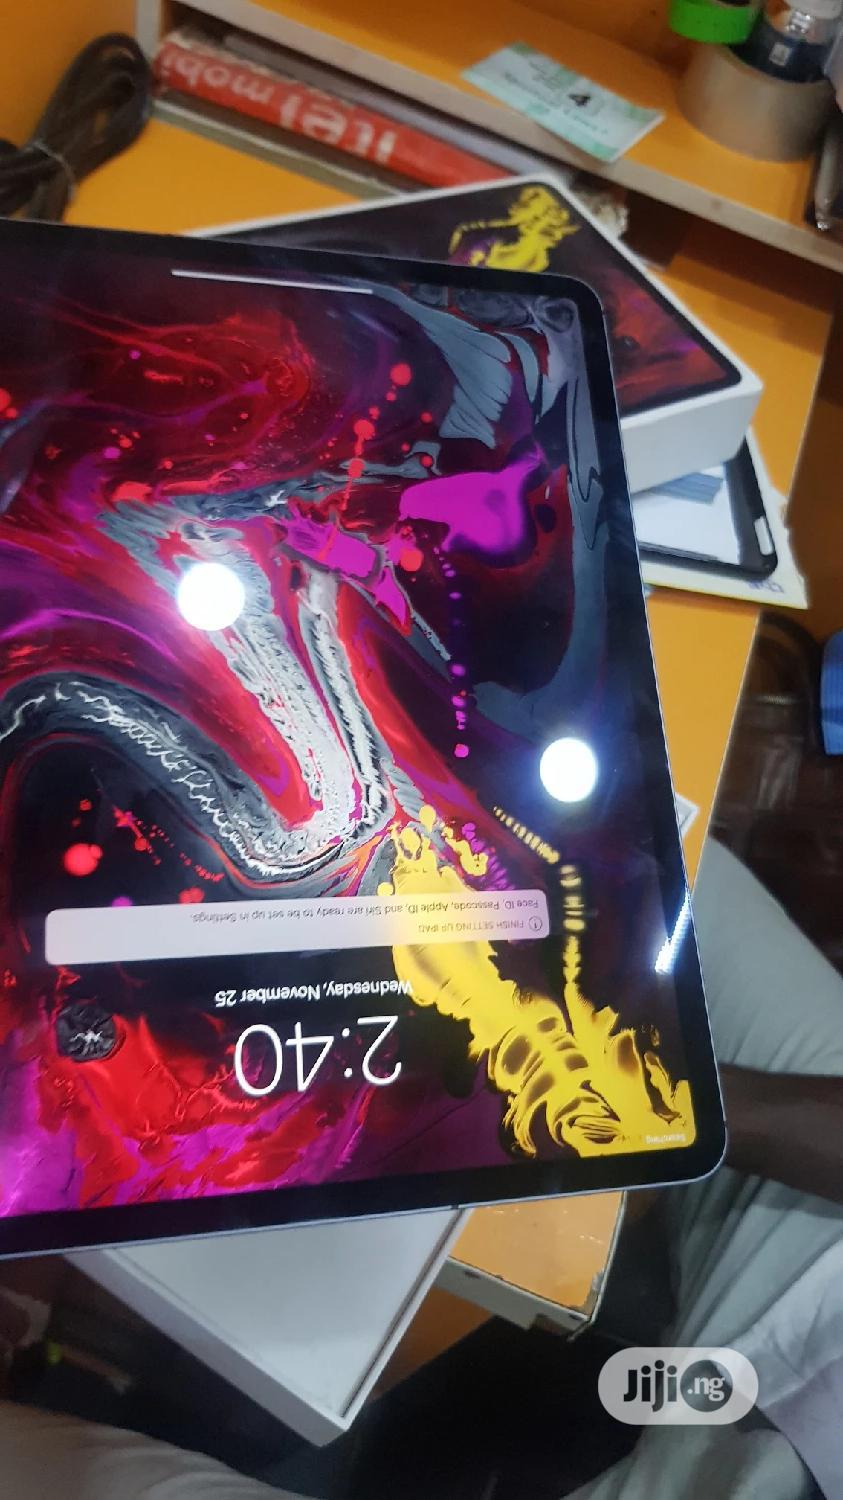 Apple iPad Pro 12.9 (2015) 512 GB   Tablets for sale in Wuse, Abuja (FCT) State, Nigeria